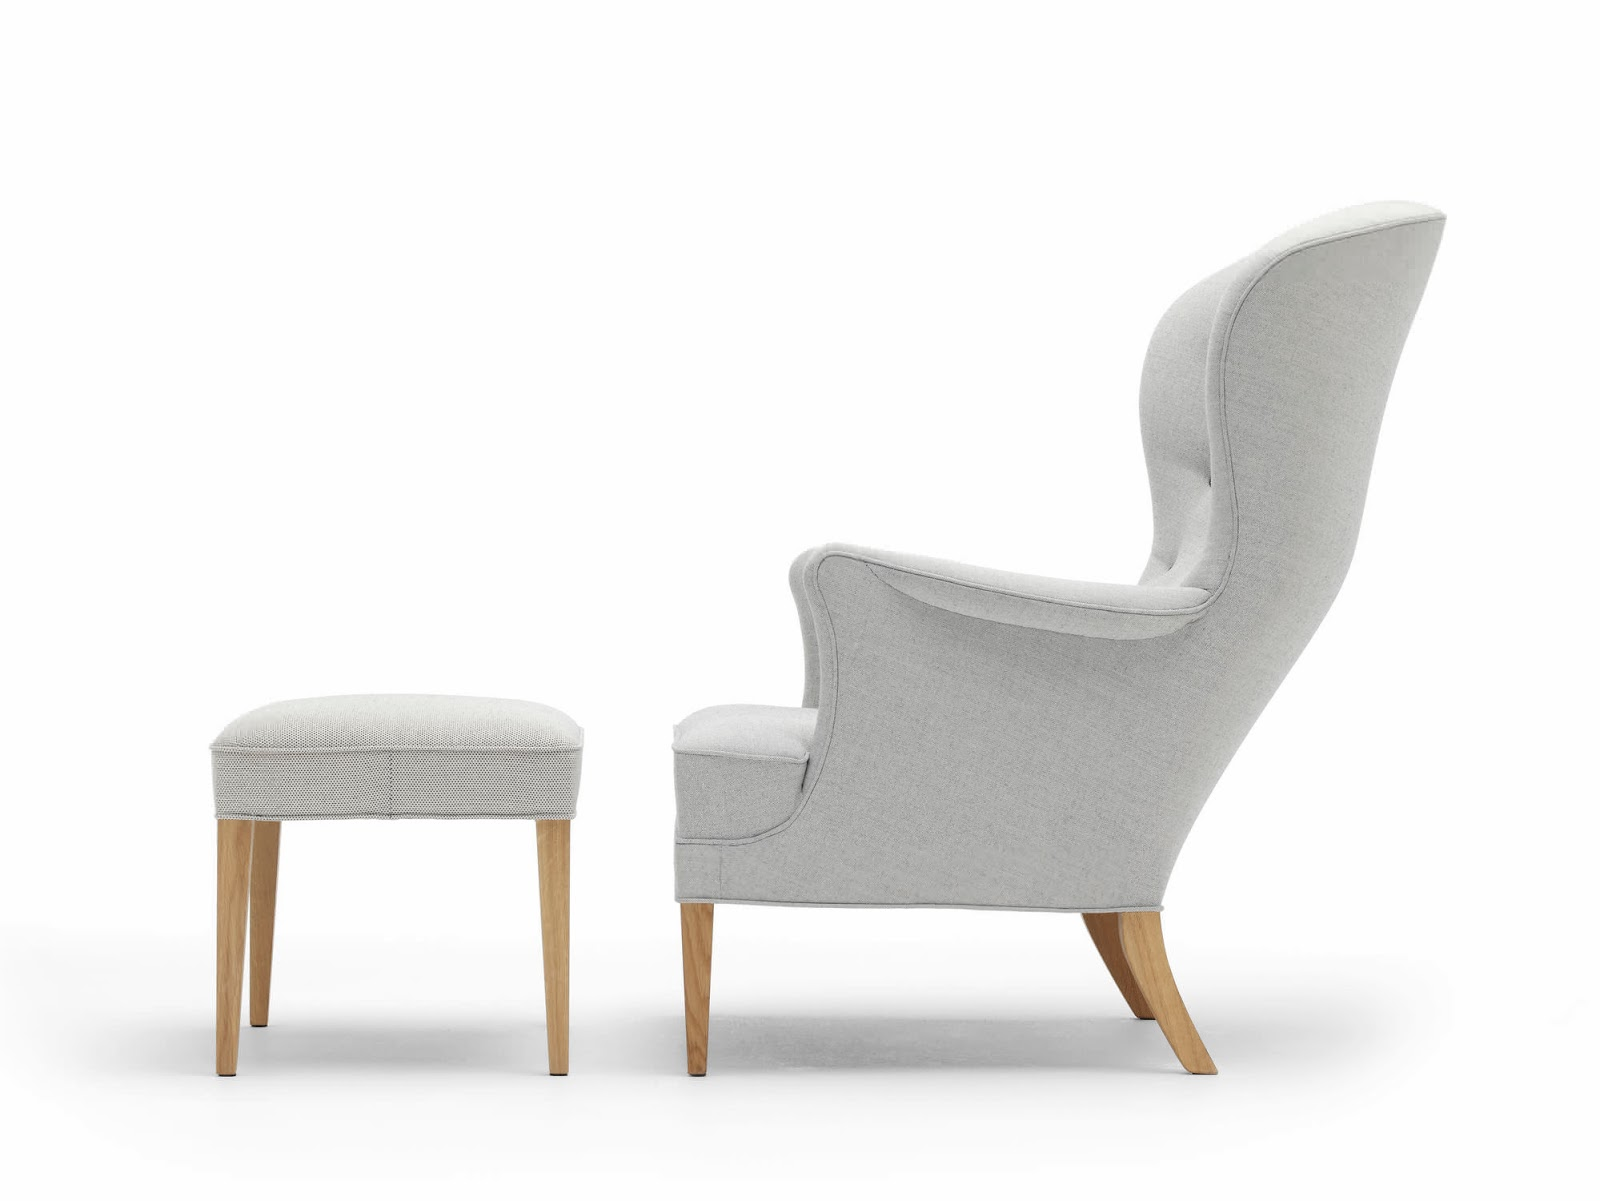 ITALIANspaceWISE By MCMM: Scandinavian Design. The Perfect